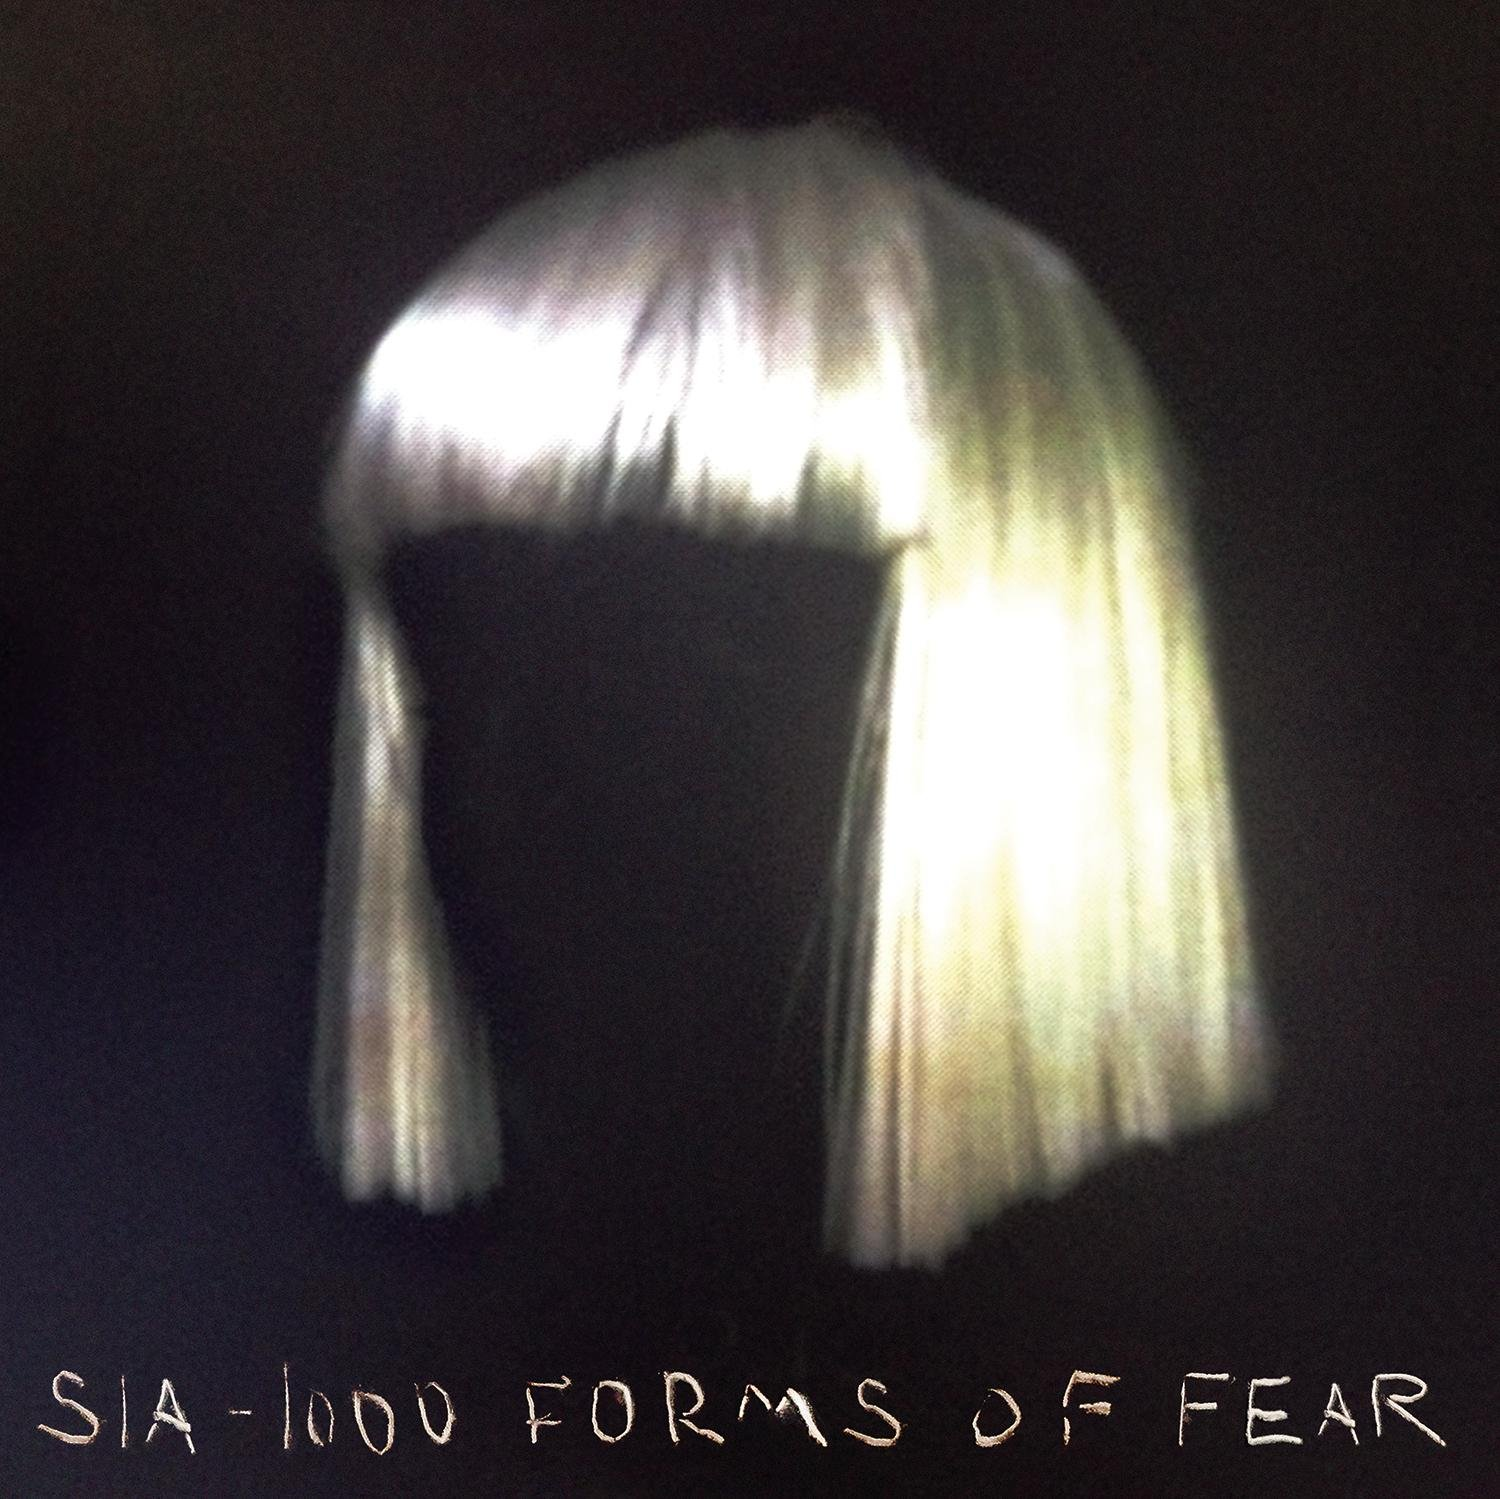 Sia - 1000 Forms Of Fear - Amazon.com Music